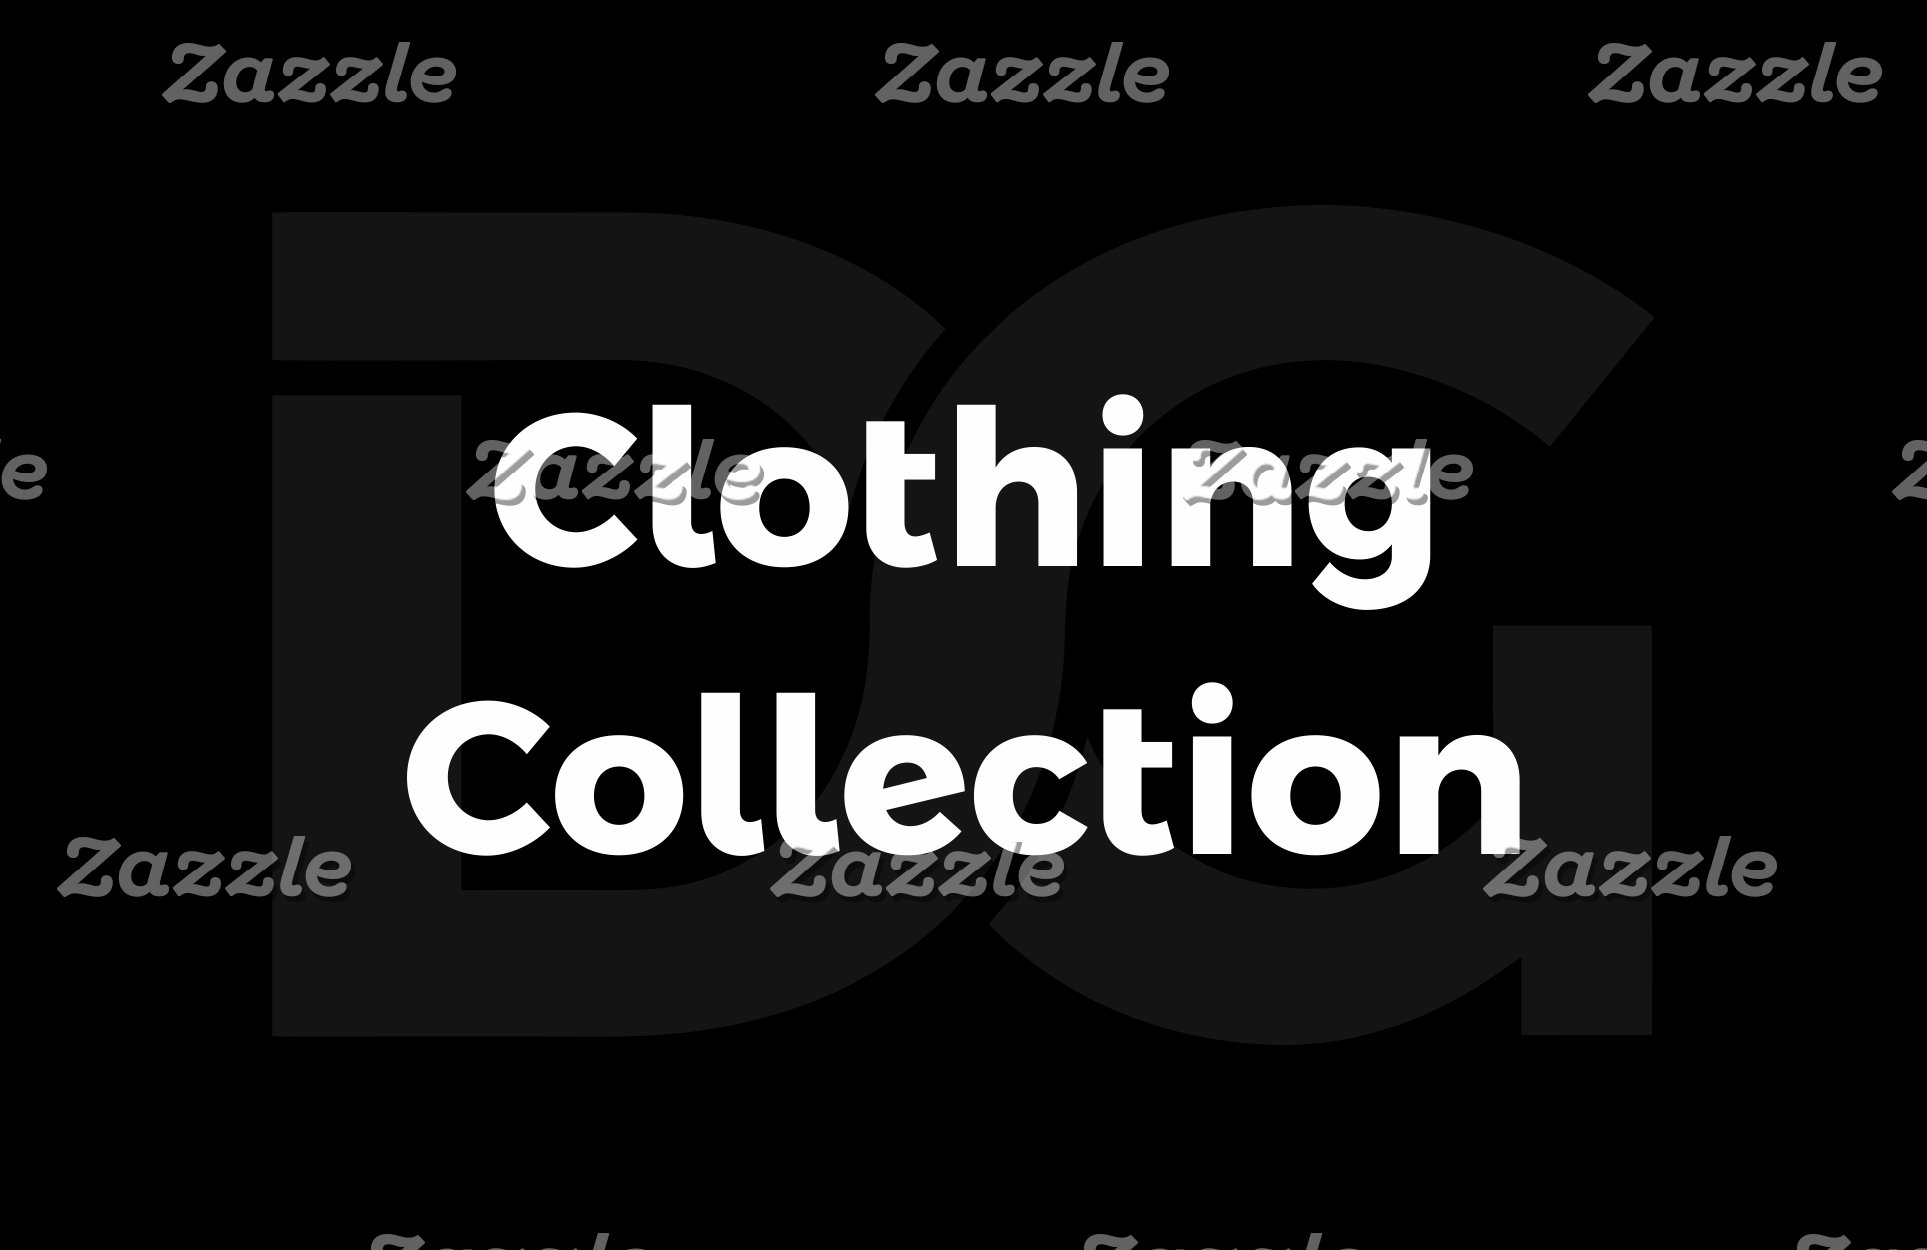 Clothing Collection